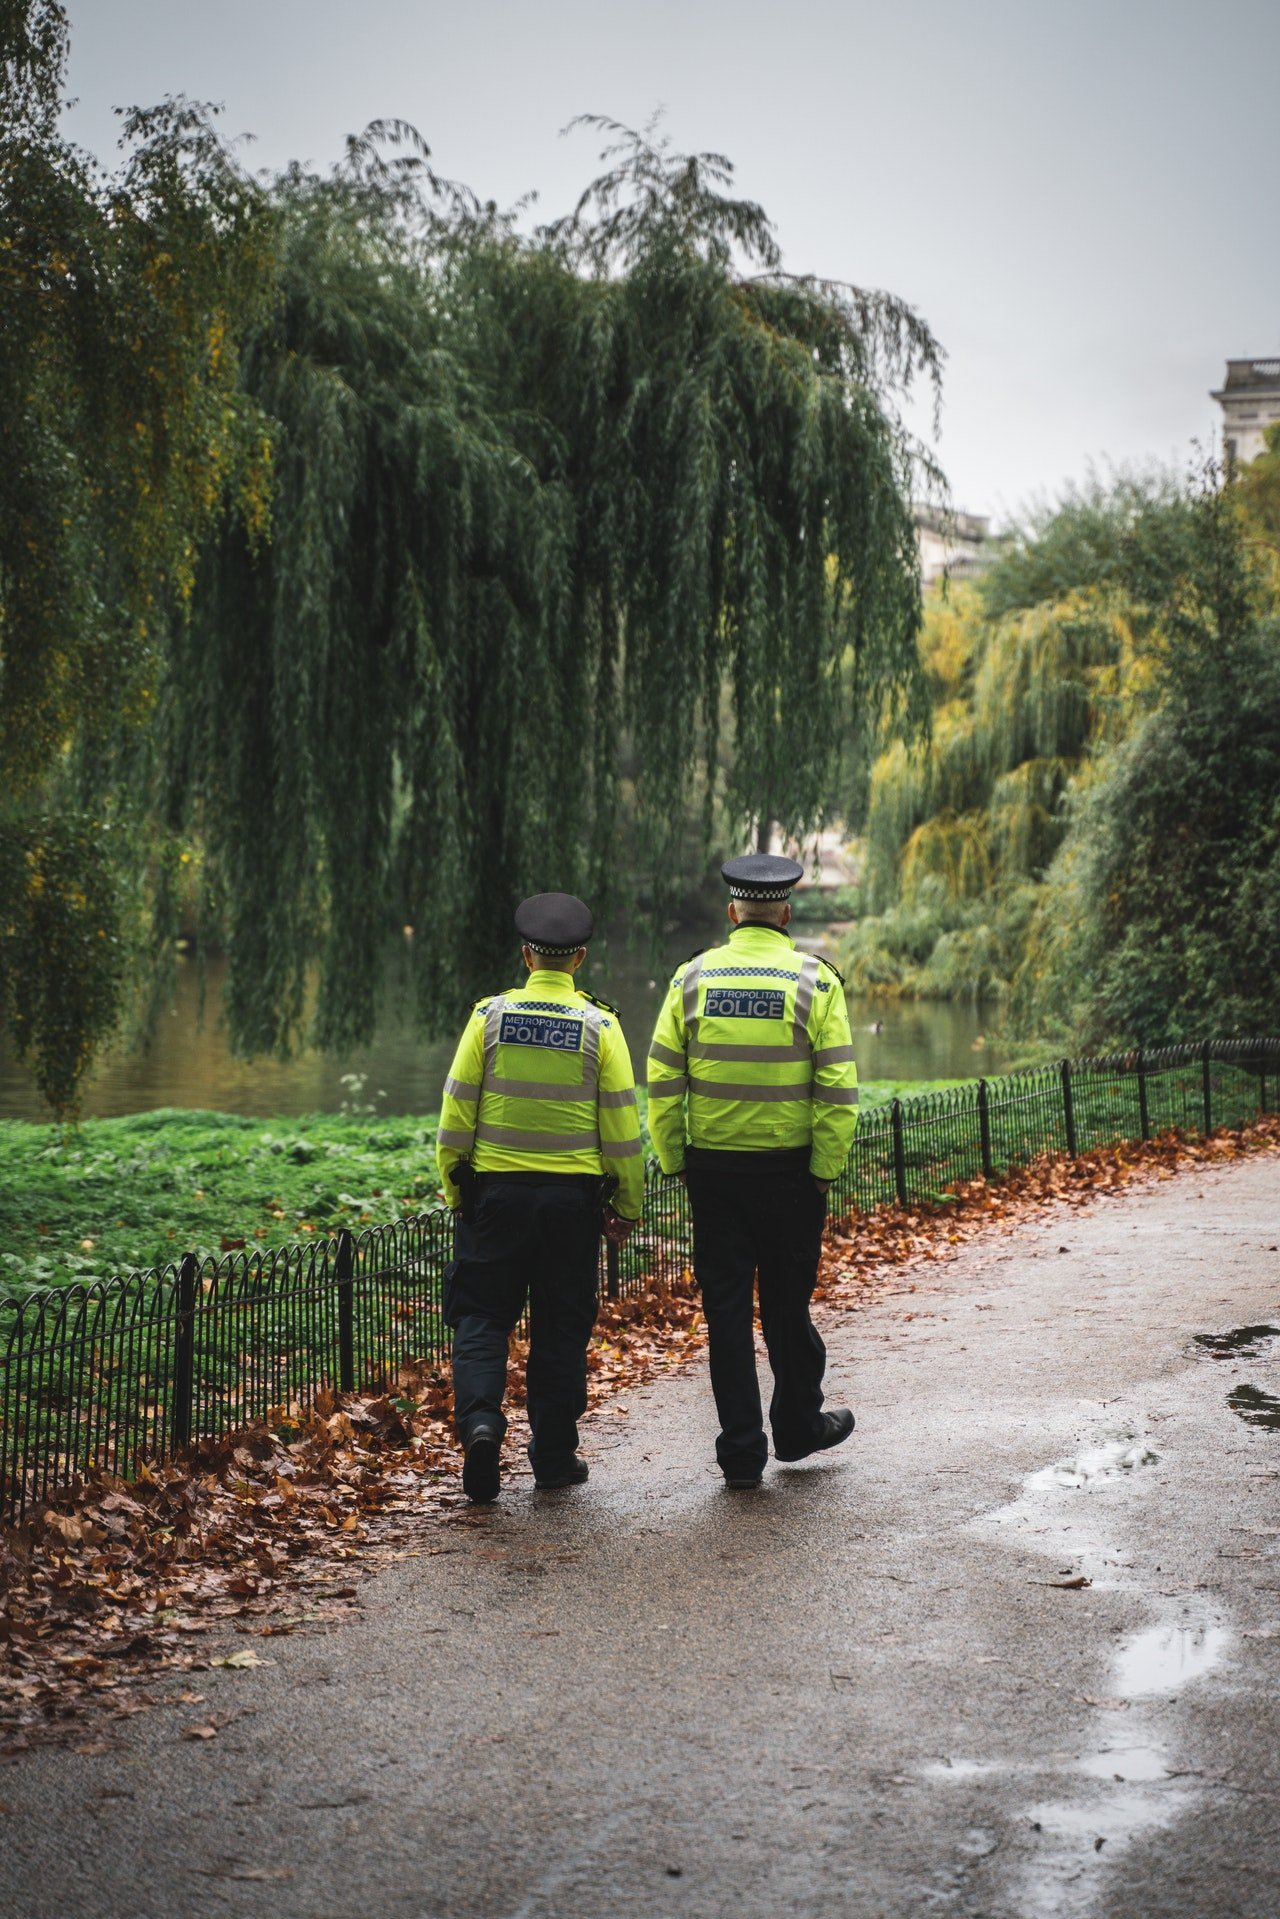 Photo of two policemen walking down the road   Photo: Pexels